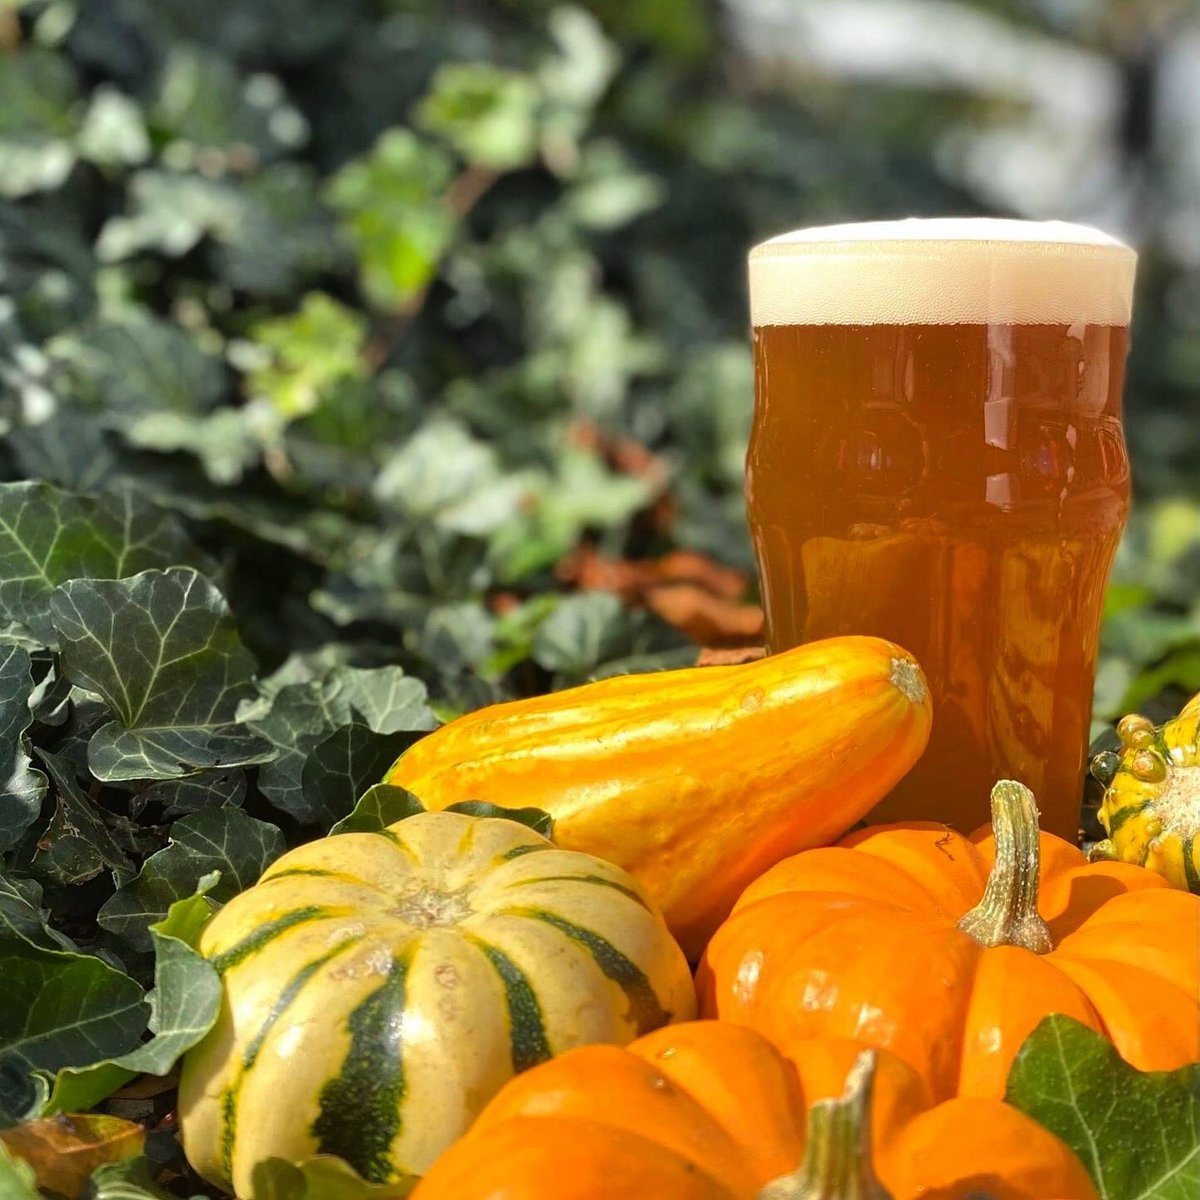 """There's nothing basic about """"Pumpkin Latte,"""" our latest tap creation! This seasonal version of Bean Ball Blonde is made with vanilla, pumpkin pie spice, almond milk creamer, and Fall Harvest Spice Coffee from @FerrisCoffee —try it today! #fallflavors #craftbeer #notbasic https://t.co/4Szes5qcEs"""